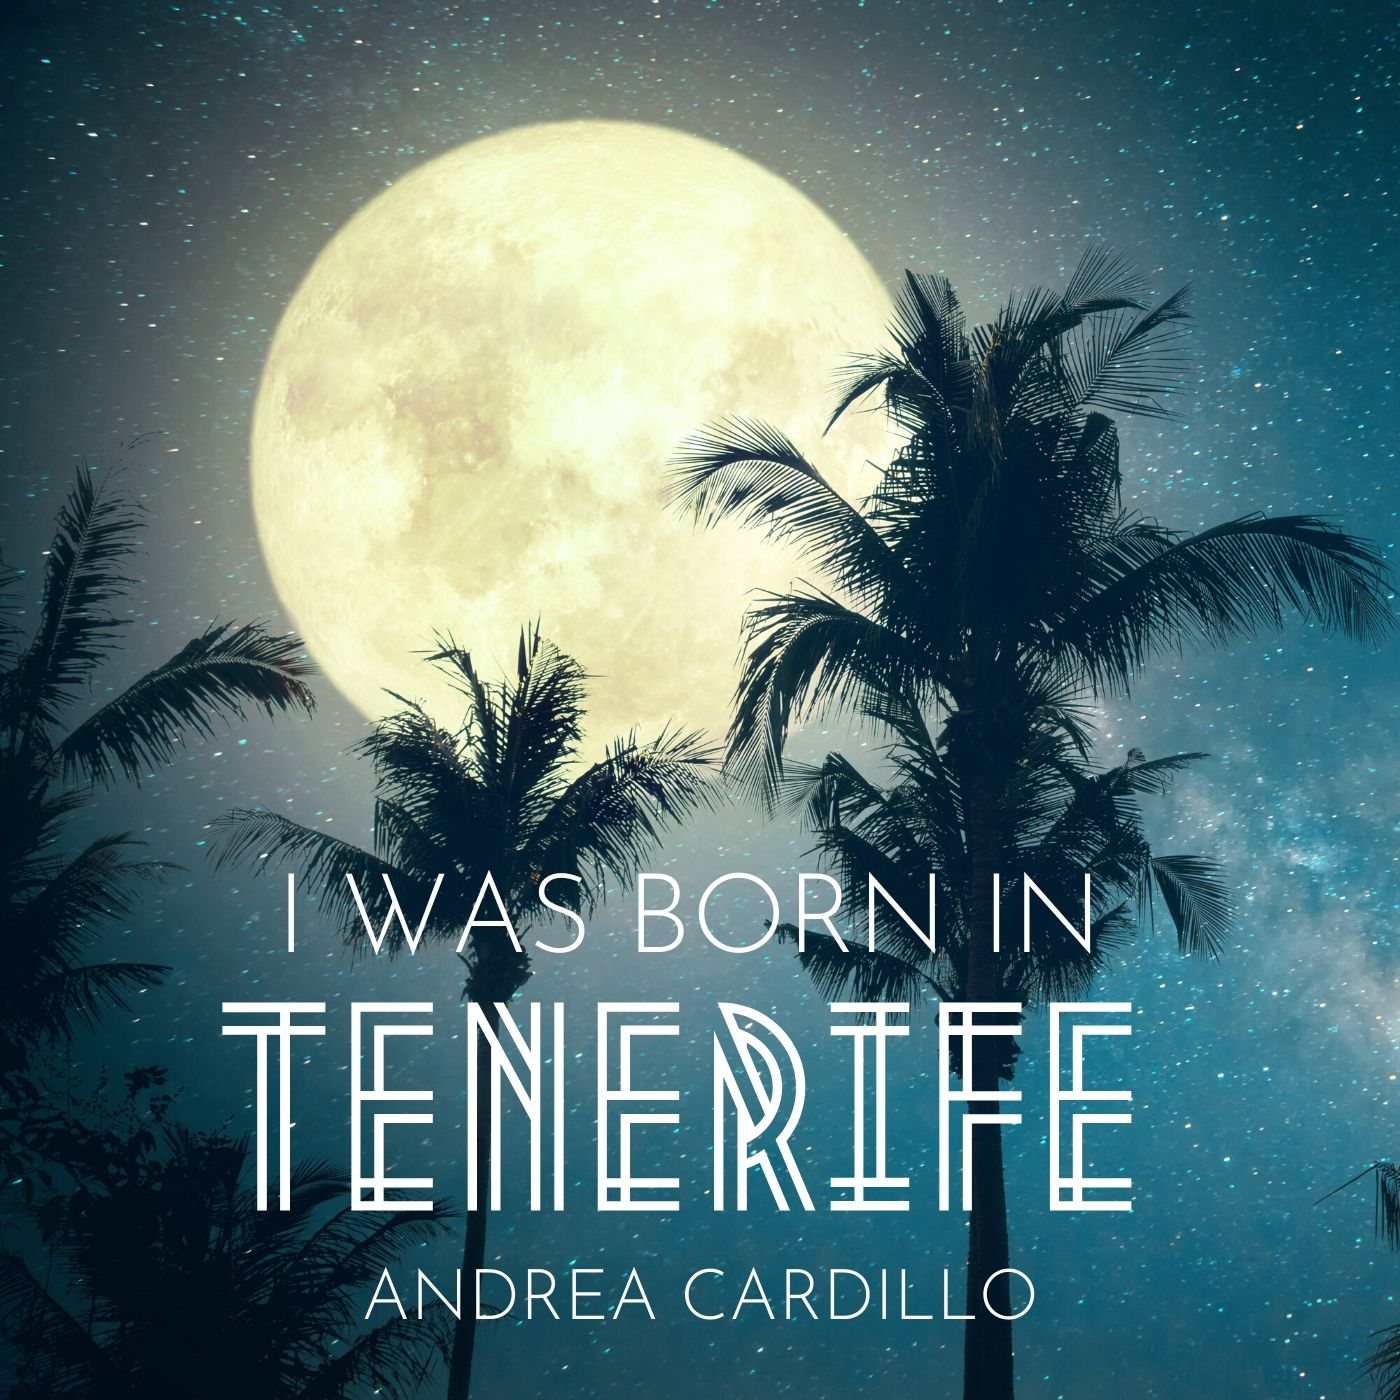 I was born in Tenerife